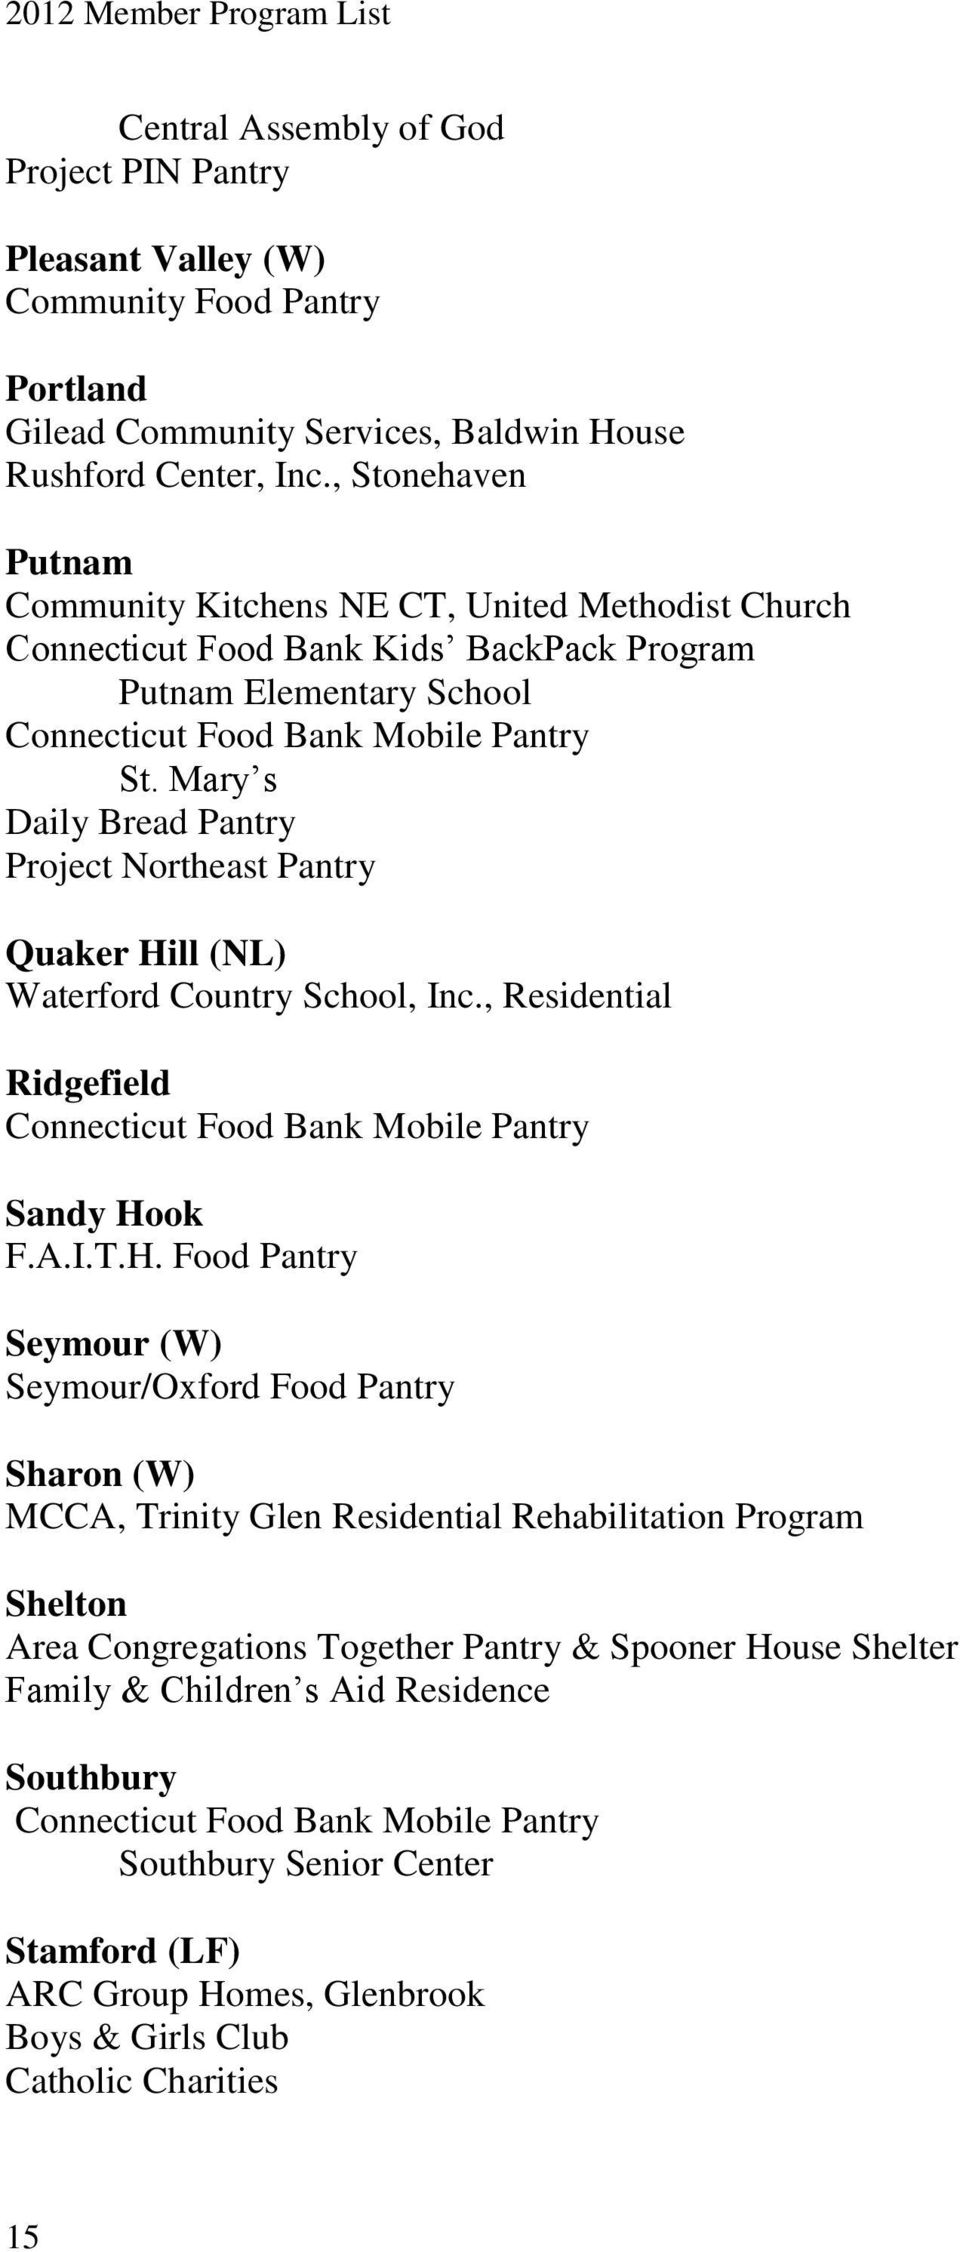 Mary s Daily Bread Pantry Project Northeast Pantry Quaker Hi